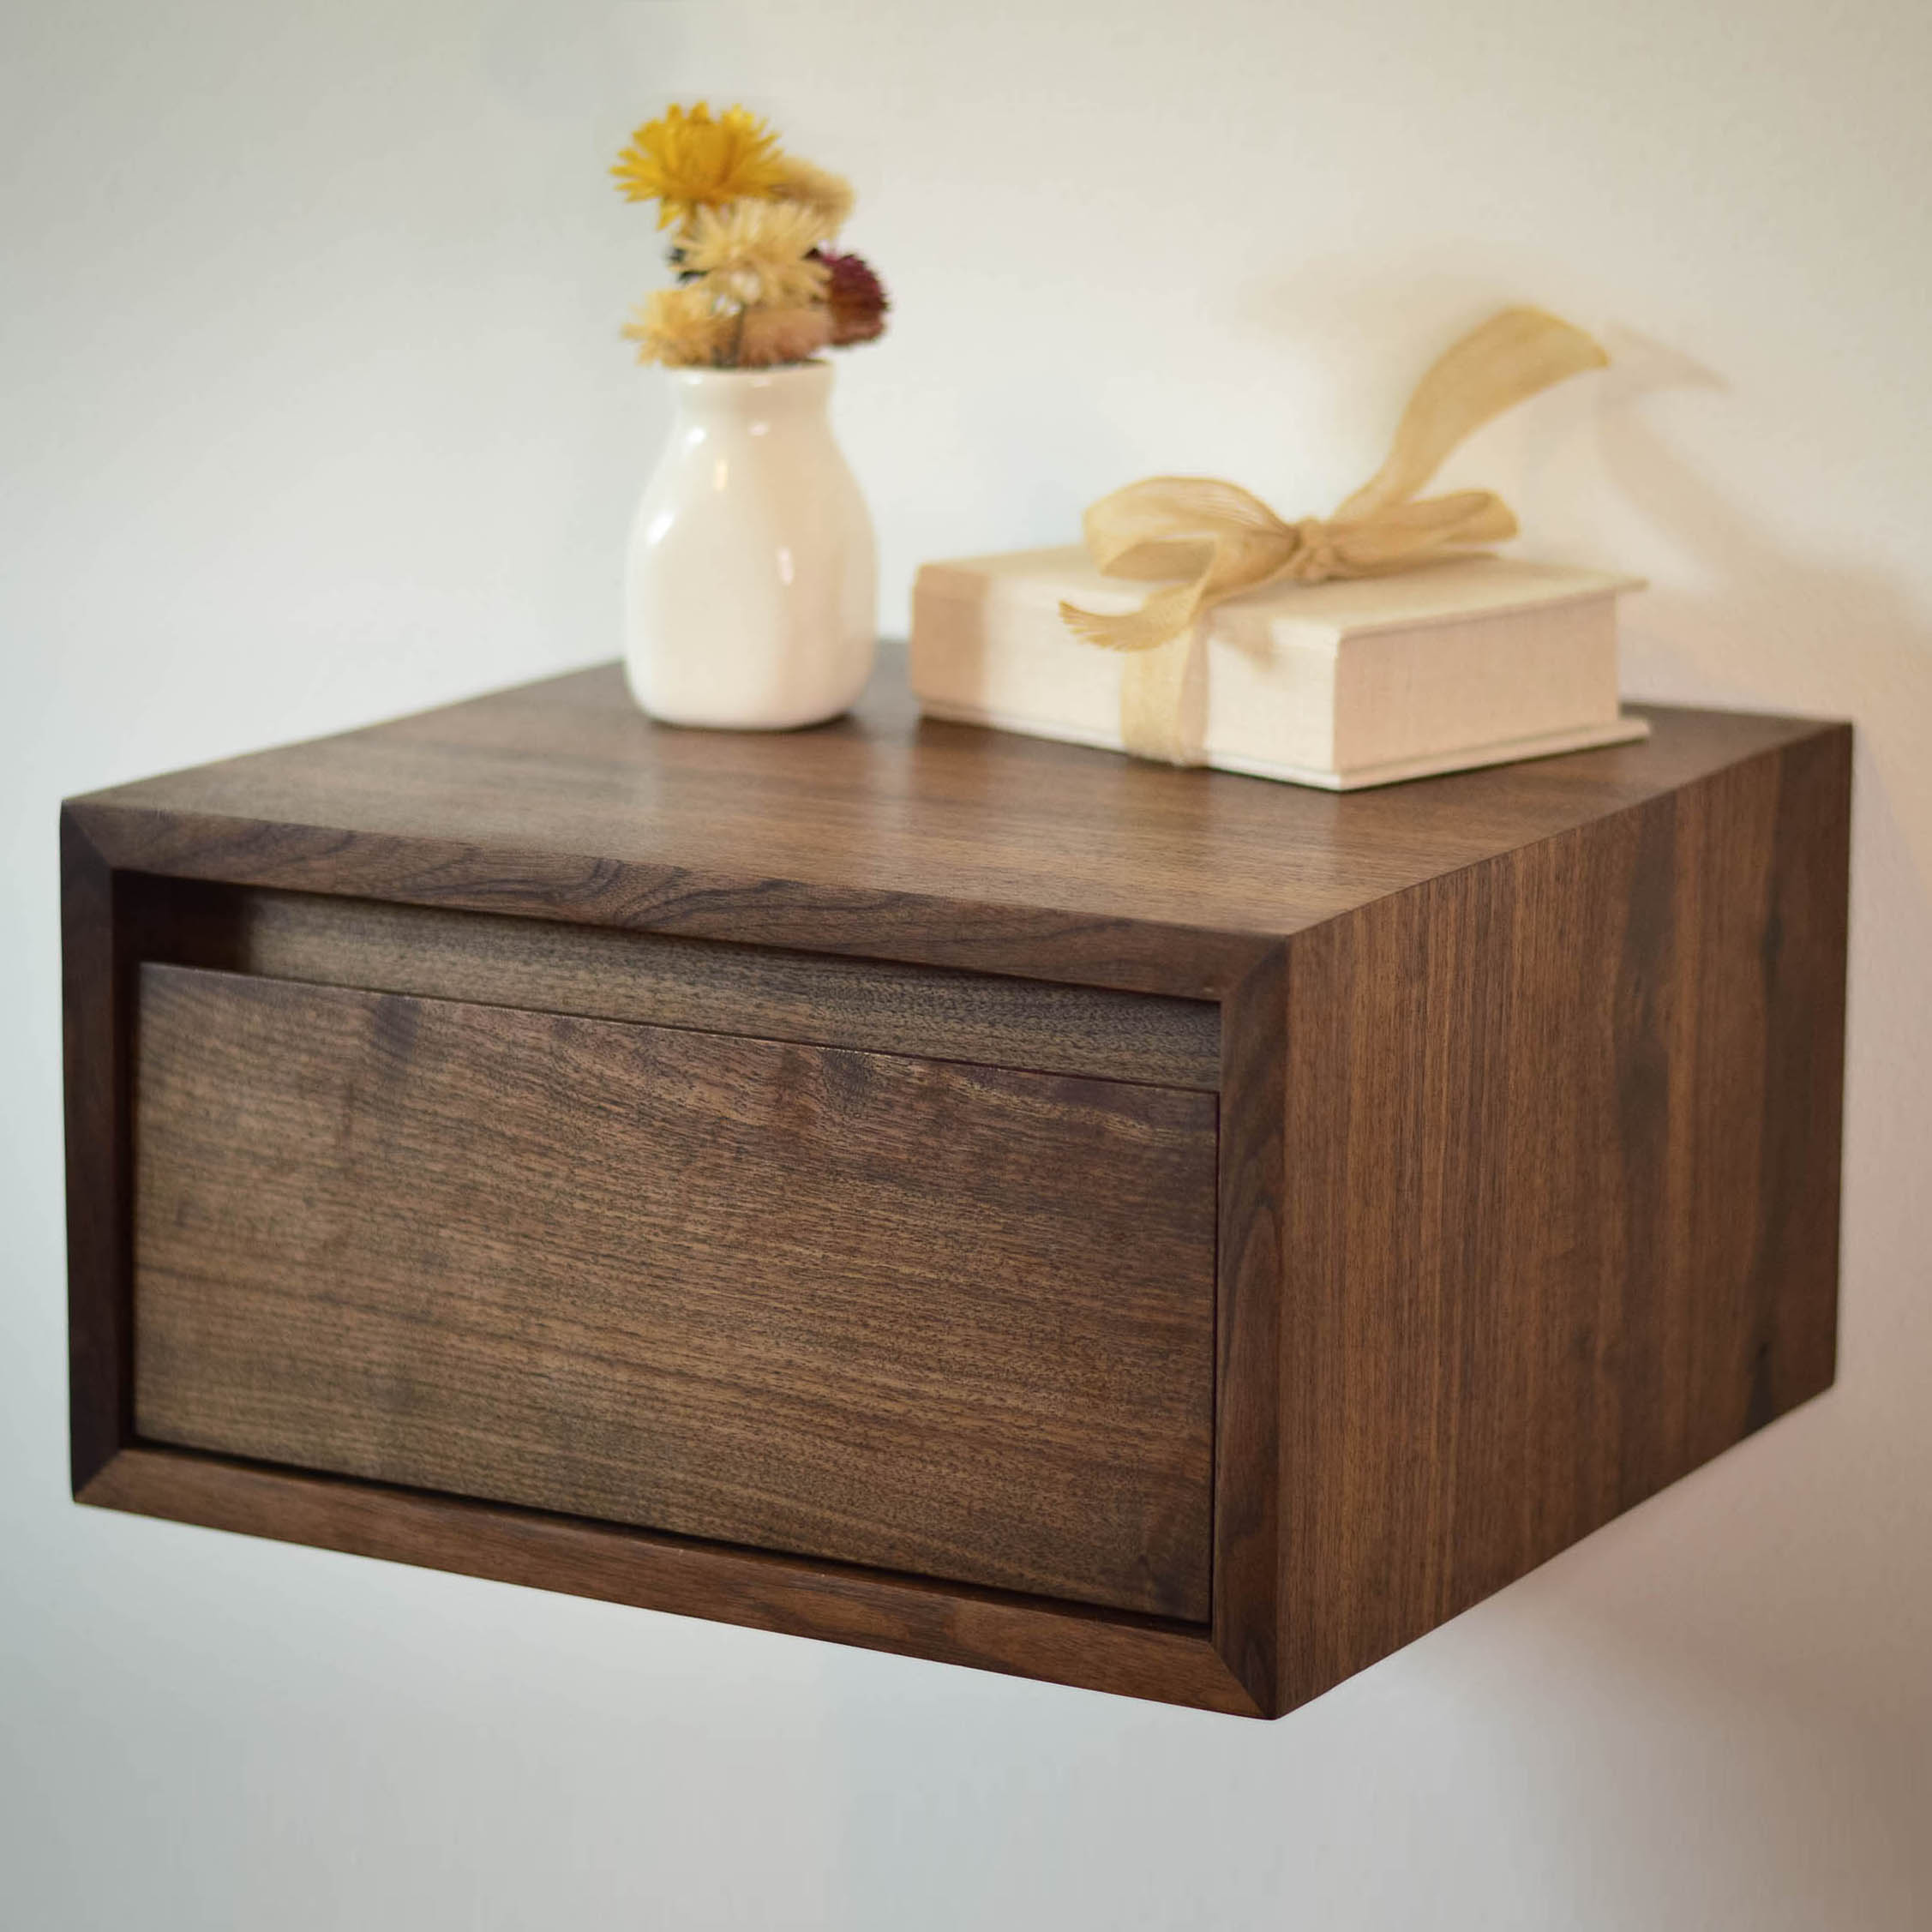 Floating walnut side table or night stand